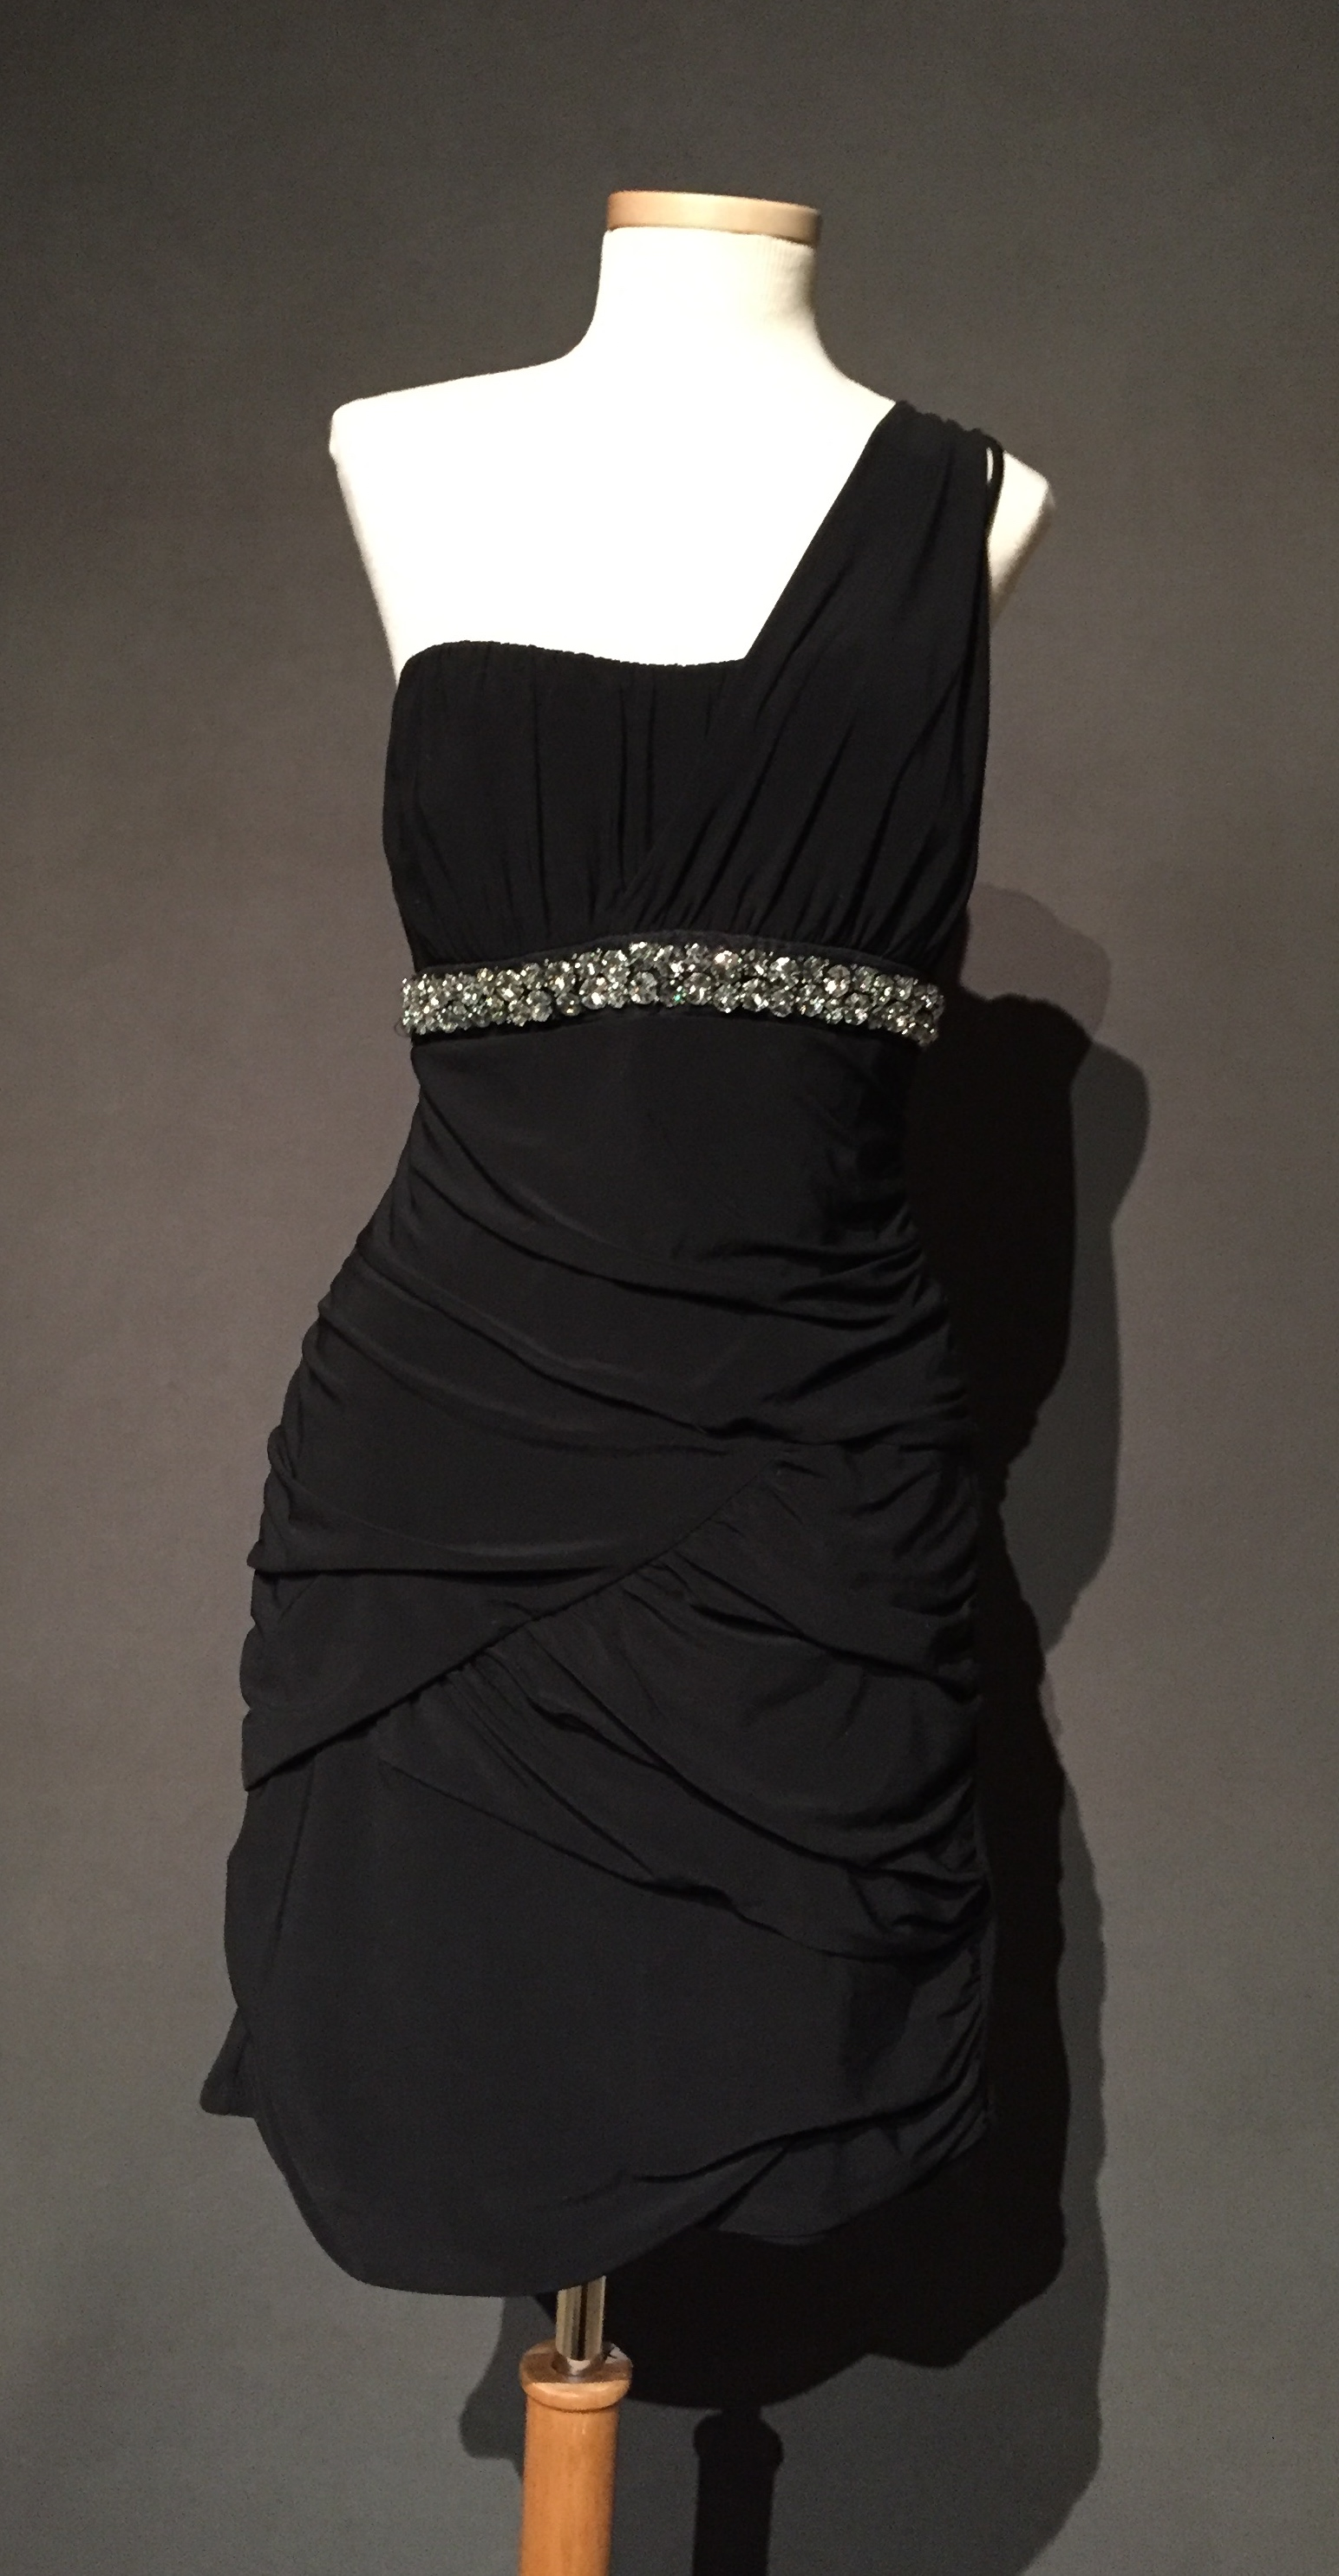 """- Black dress with rhinestone waistline Owner – Lyadonna, bi-sexual, woman, 32, lives in Iowac. 2010sLyadonna frequently wore this little black dress to her local gay bar and related, """"Oh yeah, yeah, River Wild was a drag king that I got friendly with because of this dress. It's my lucky dress."""" – personal interview with Lyadonna, October 5, 2017"""